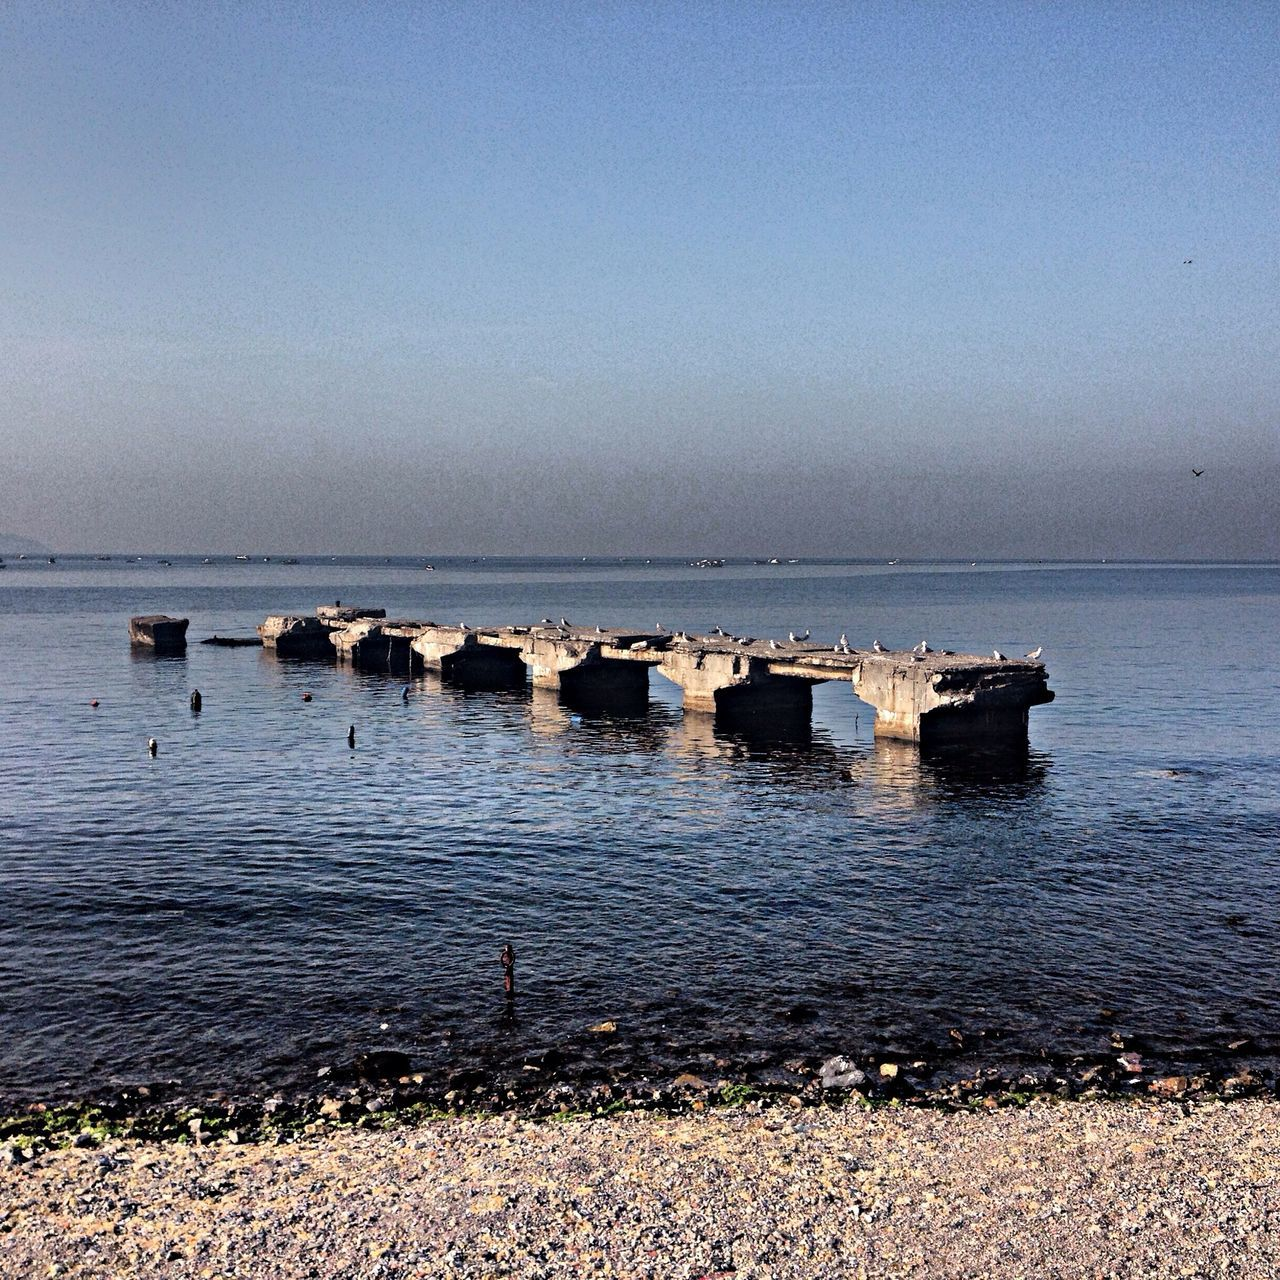 water, sea, horizon over water, tranquil scene, clear sky, tranquility, scenics, copy space, beauty in nature, nature, beach, rippled, sky, nautical vessel, calm, idyllic, seascape, blue, shore, day